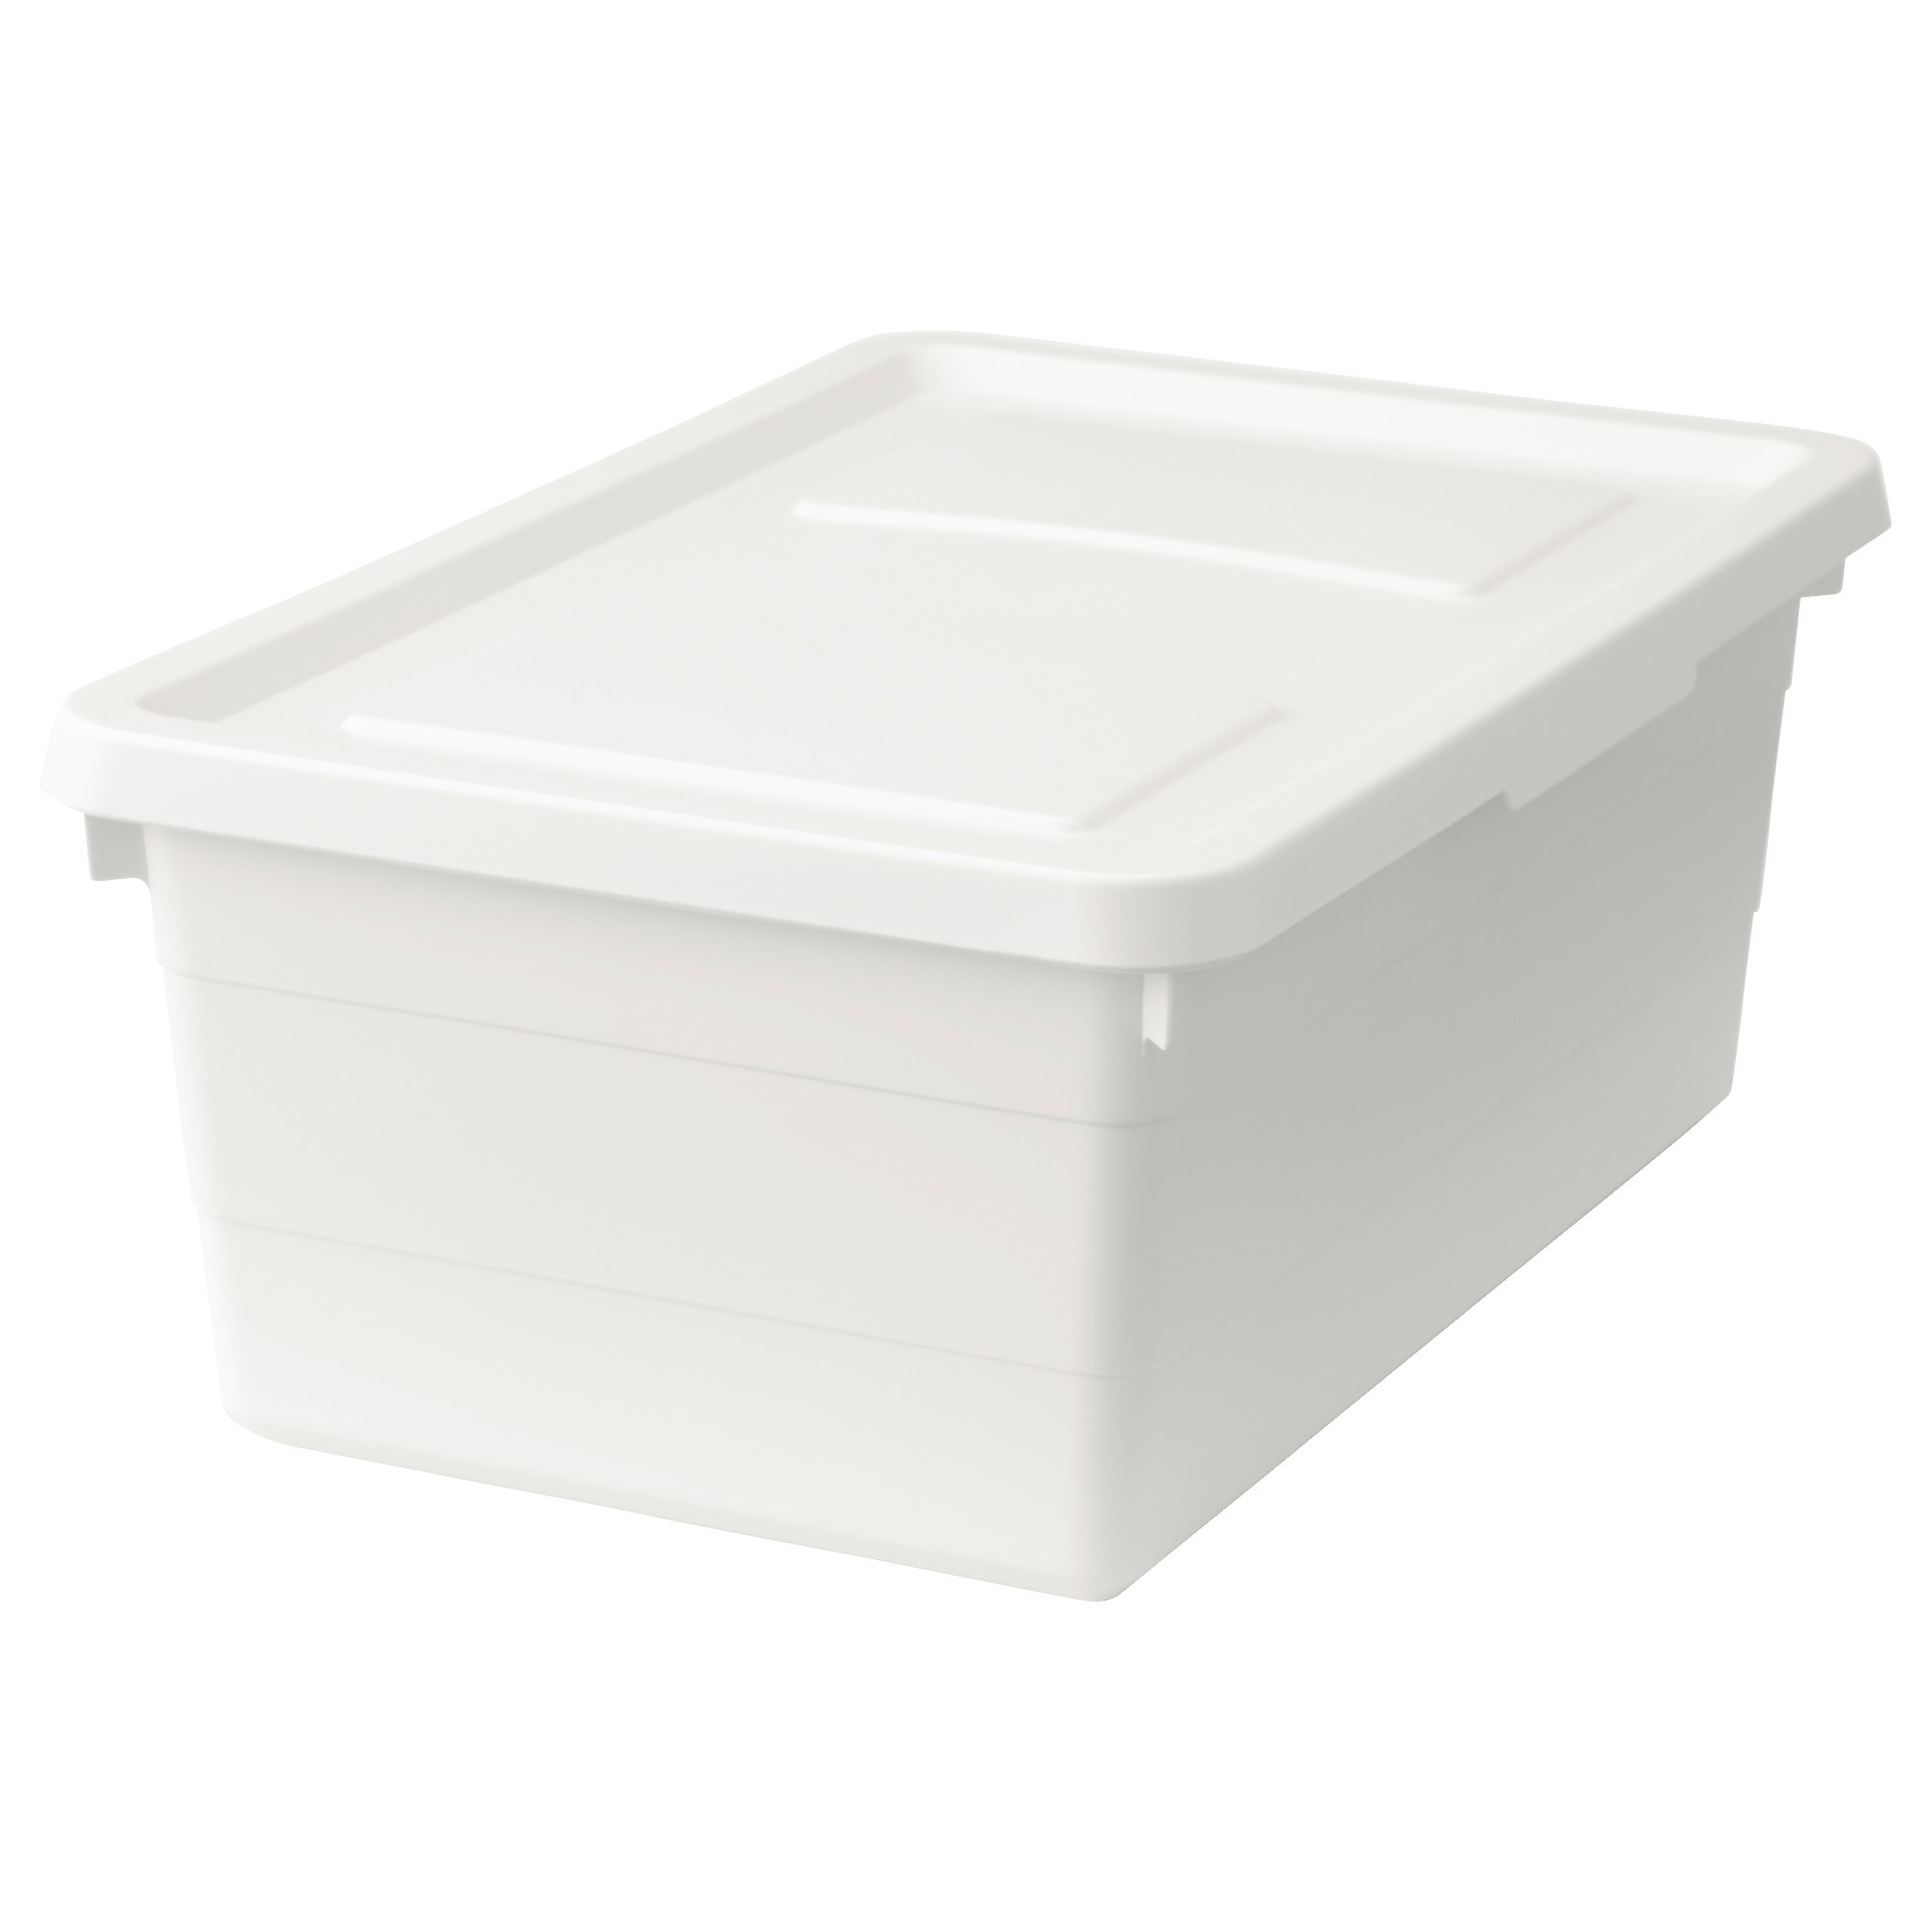 Ikea Sockerbit White Box With Lid Organization Storage